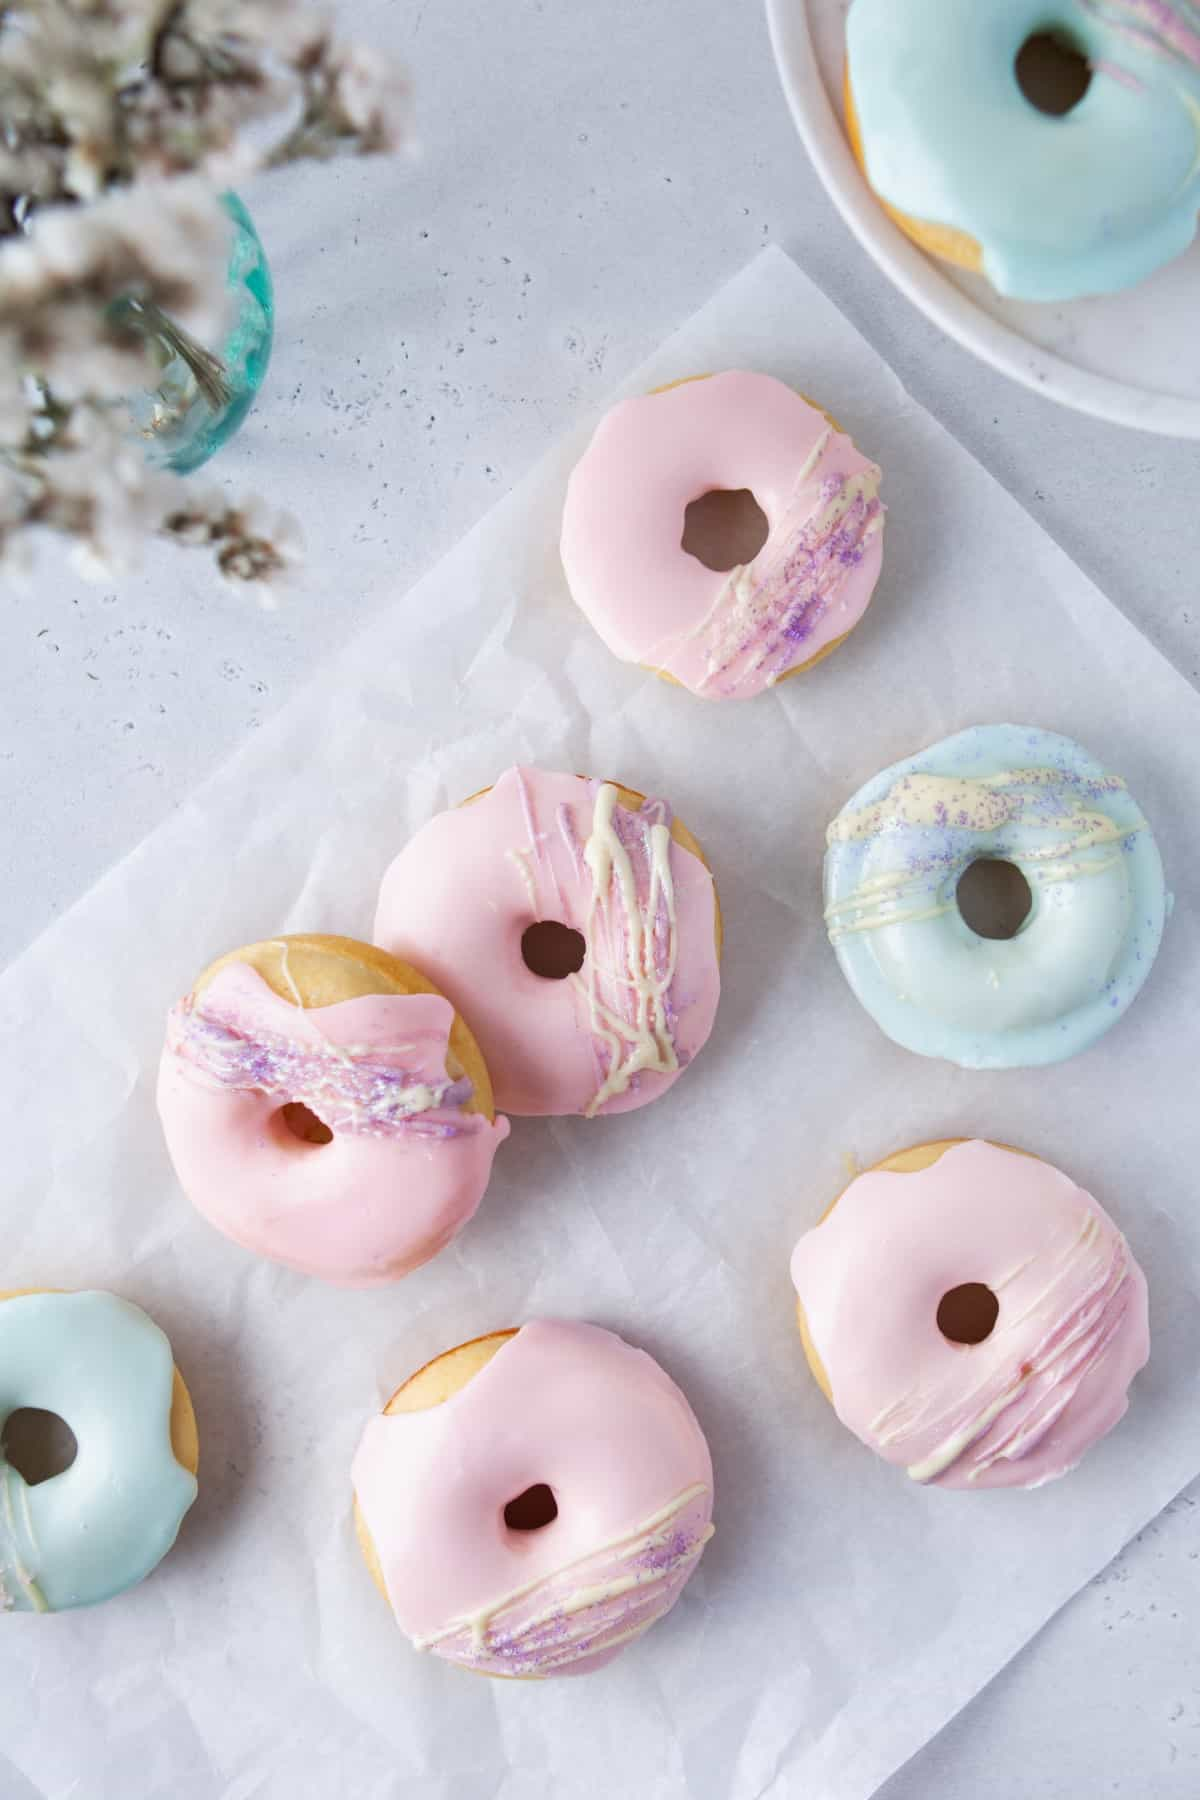 Overhead Vanilla Baked Buttermilk Donuts decorated with pink and blue icing.